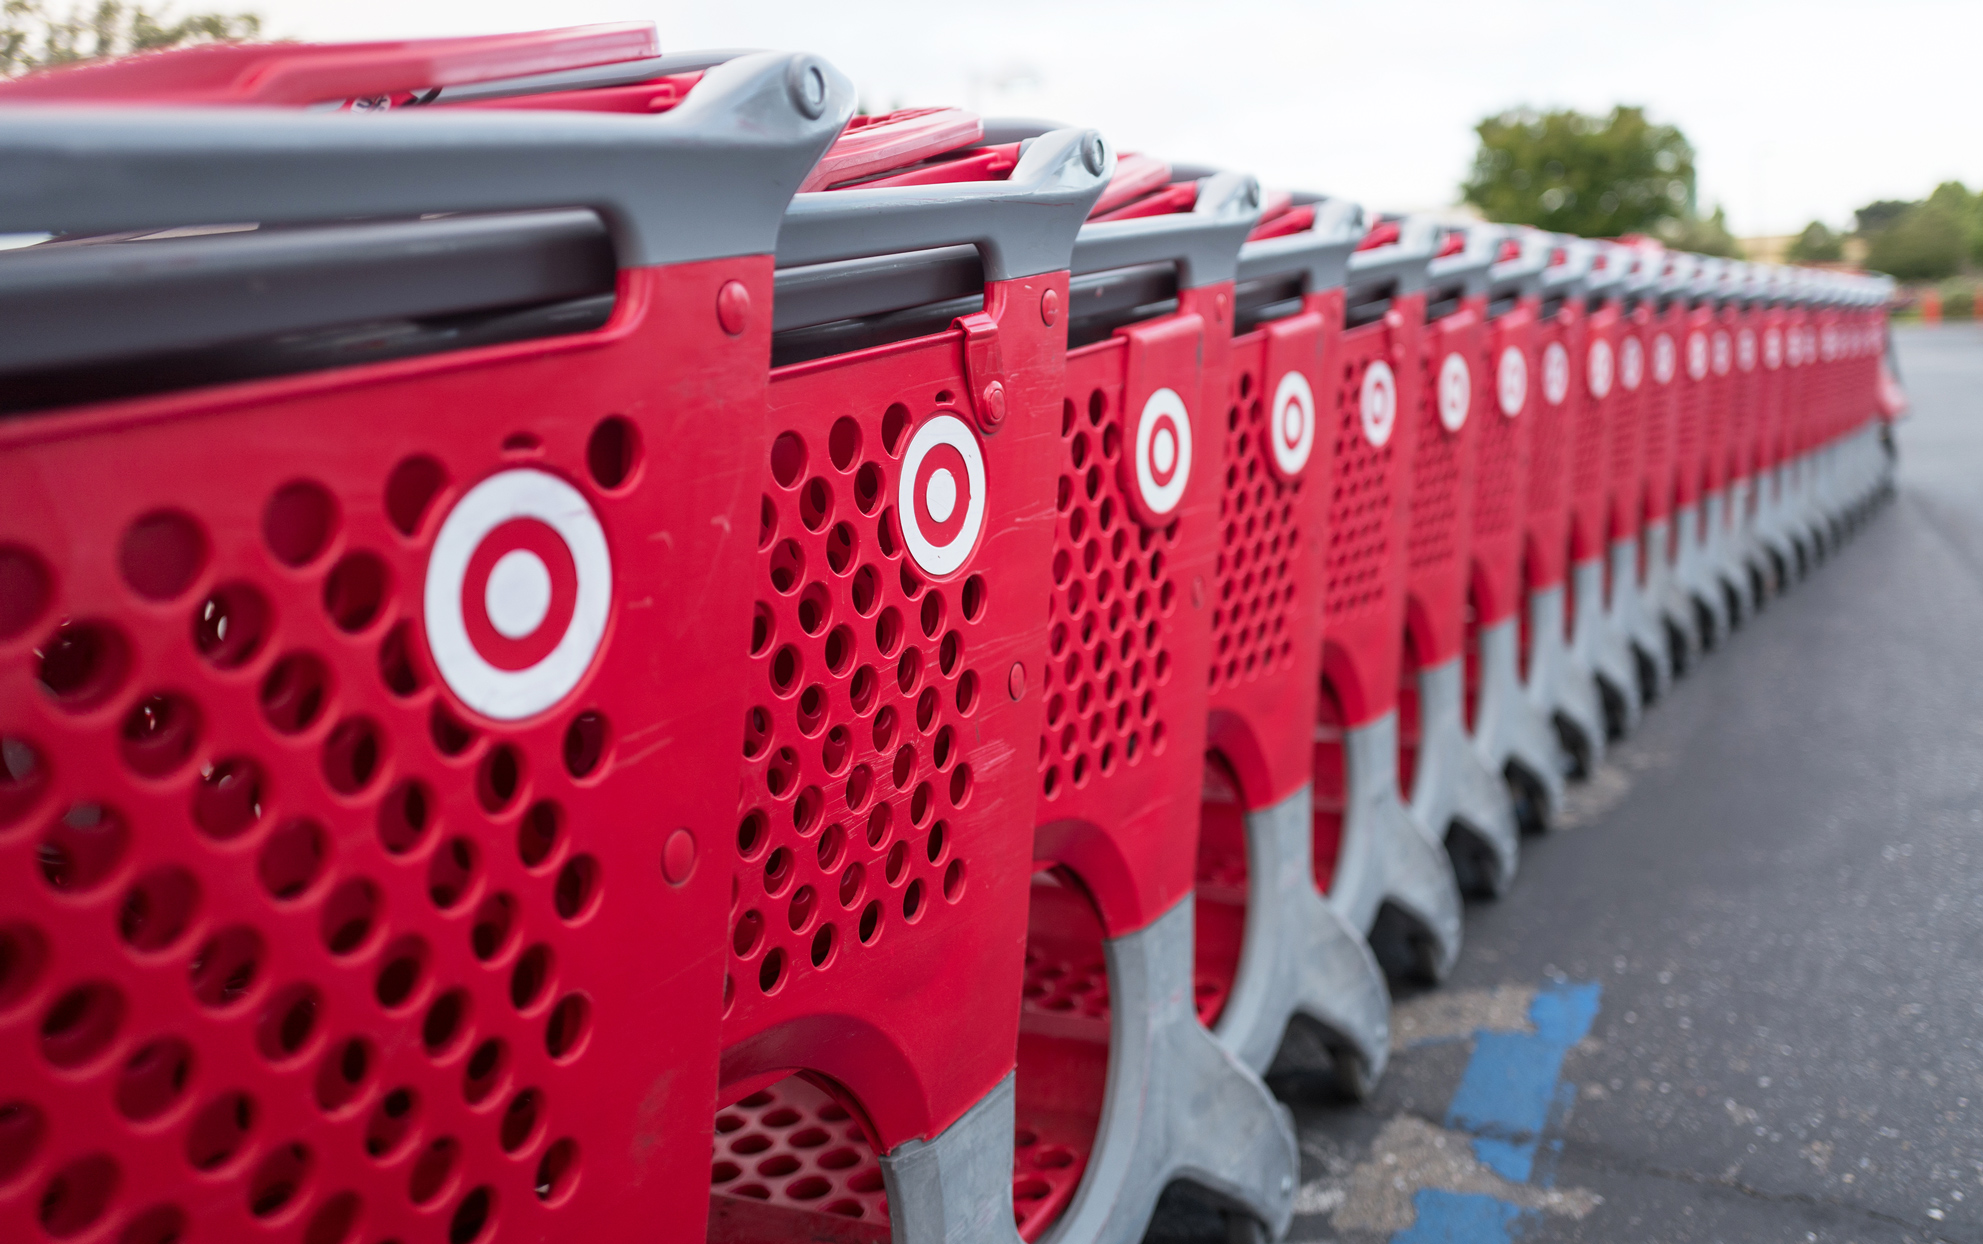 a row of Target Store shopping carts in a parking lot